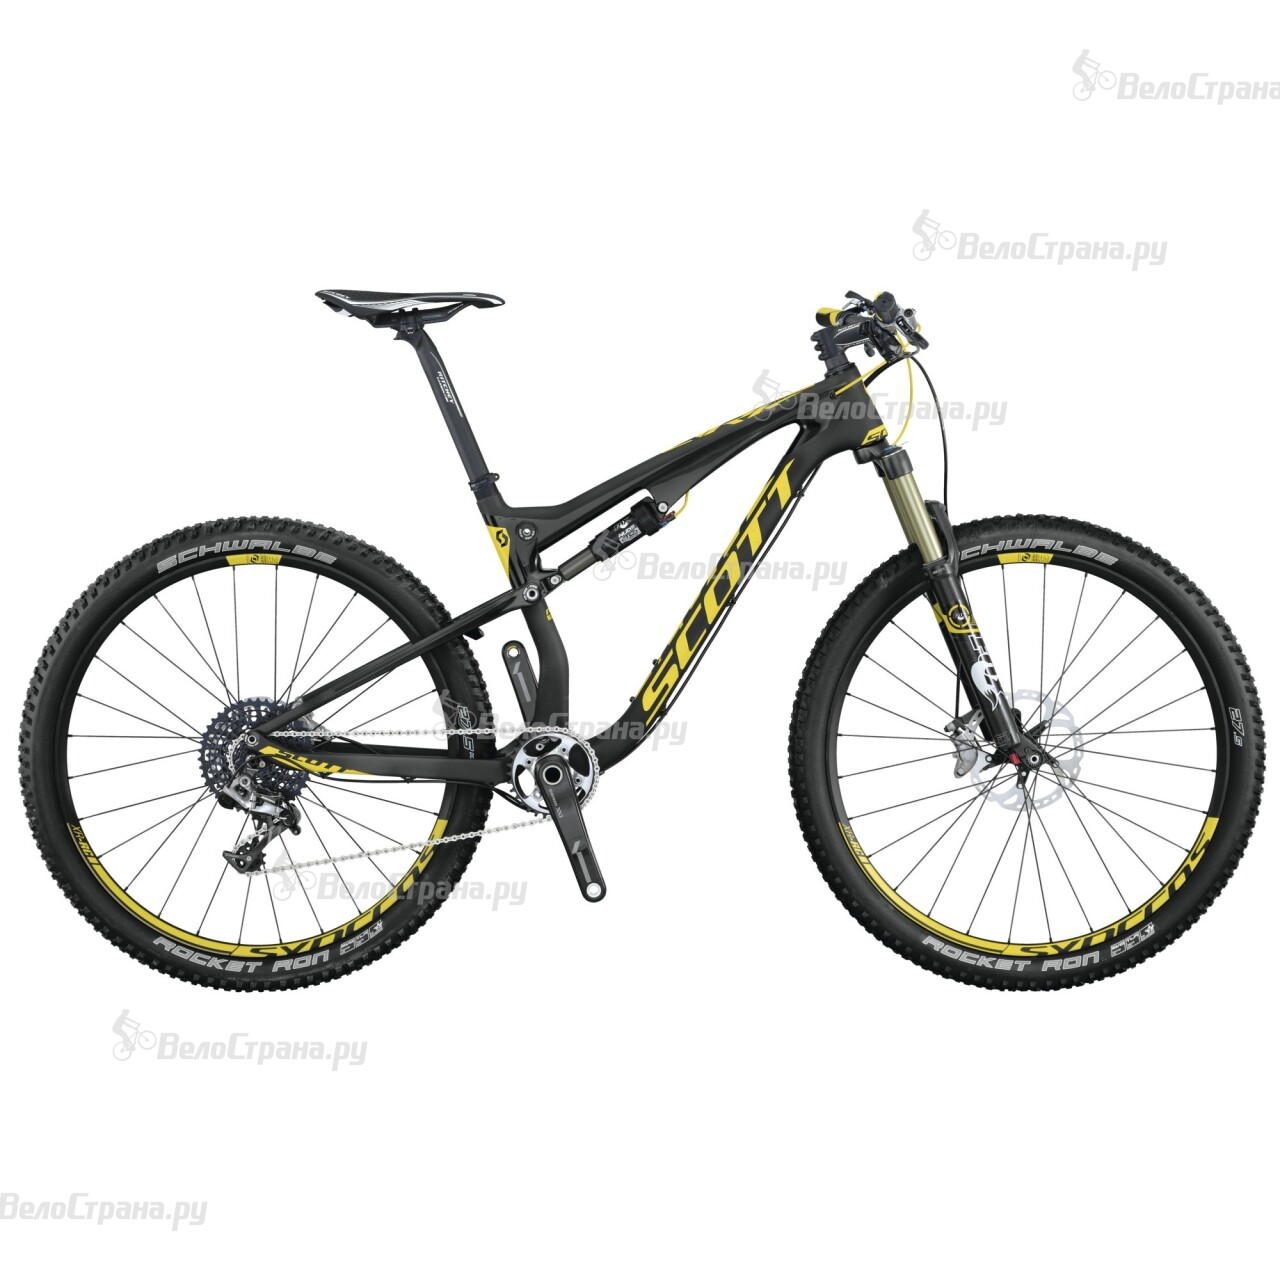 Велосипед Scott Spark 700 RC (2015)  велосипед scott contessa spark 700 rc 2016